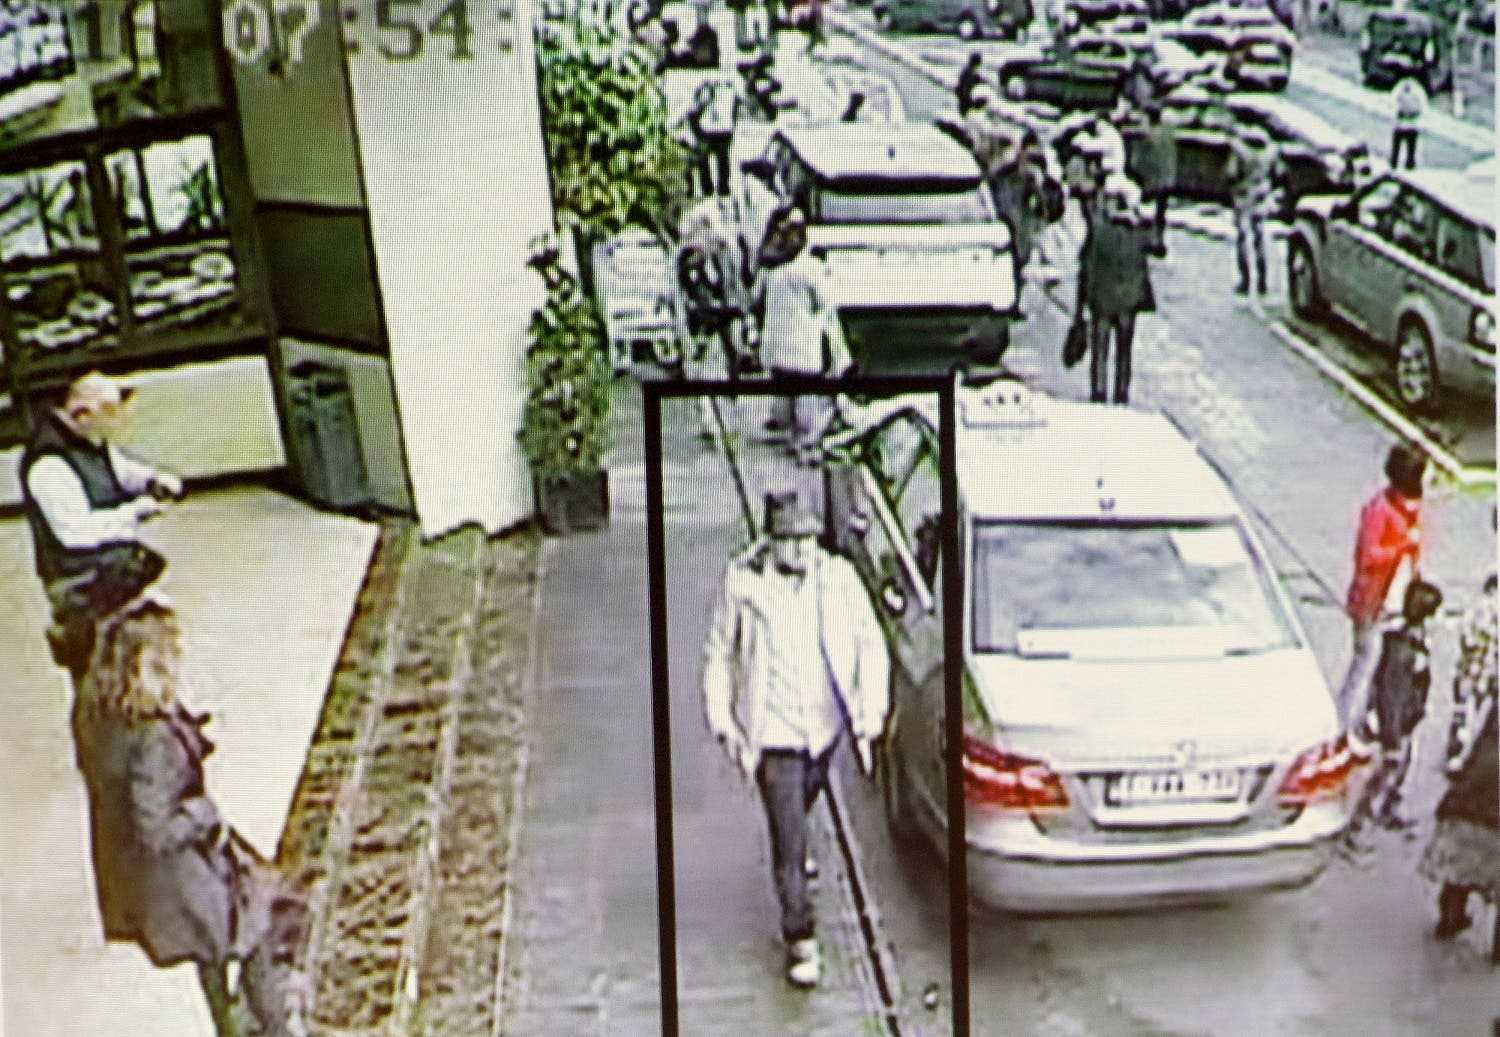 A suspect in the attack which took place at the Brussels international airport of Zaventem, is seen in this CCTV image made available by Belgian Police on April 7, 2016. (Reuters/CCTV/Belgian Federal Police)